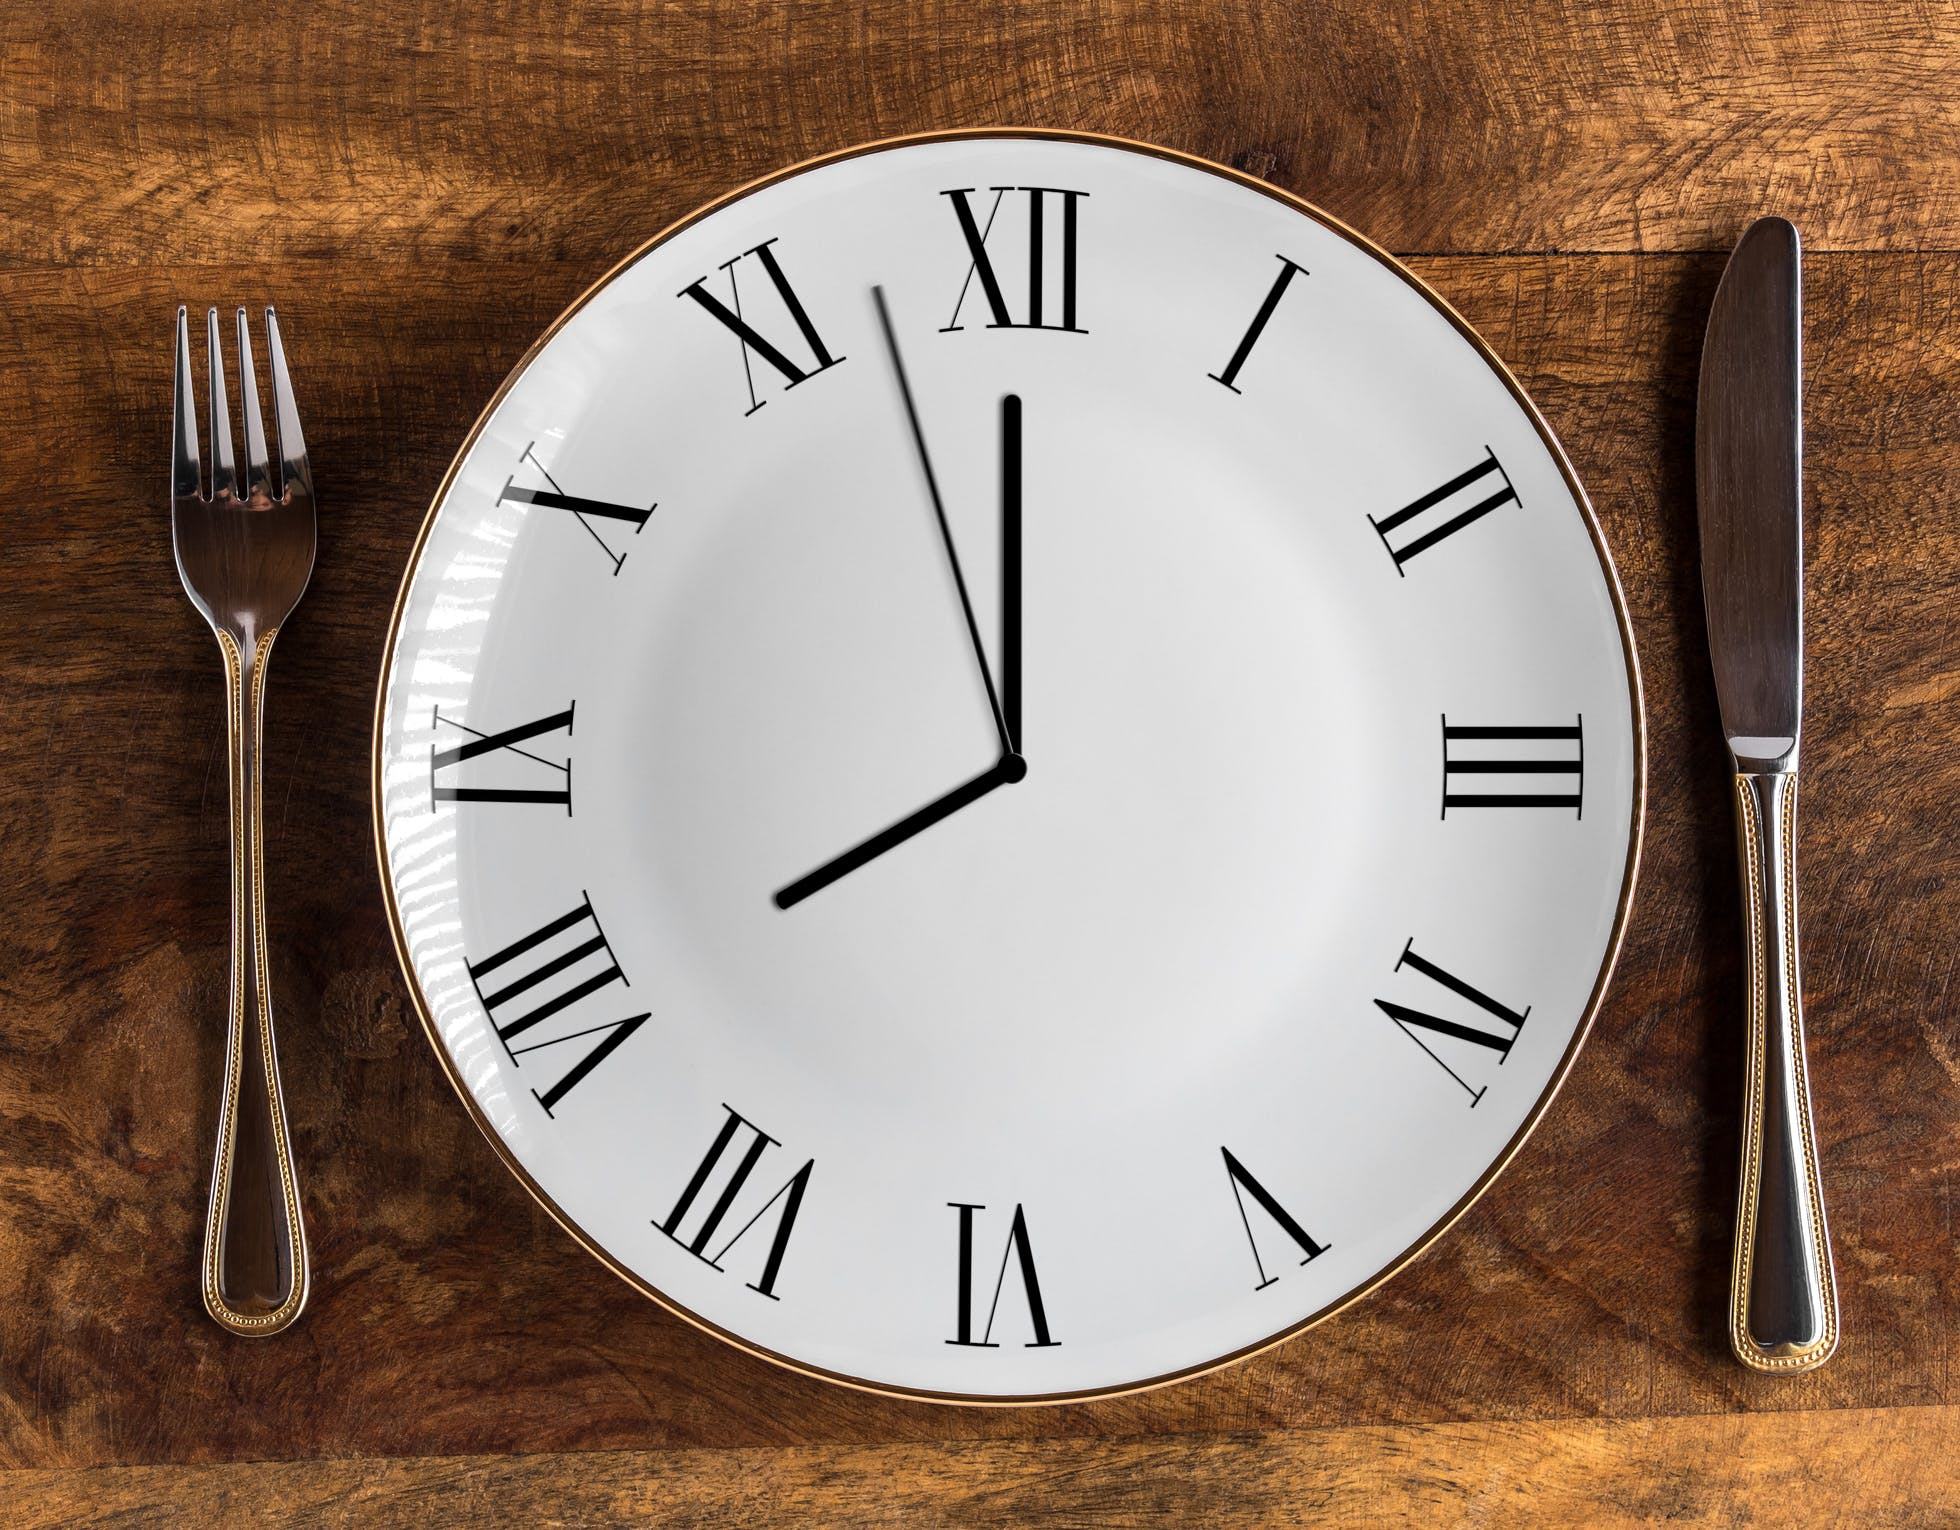 The brain-boosting properties of fasting